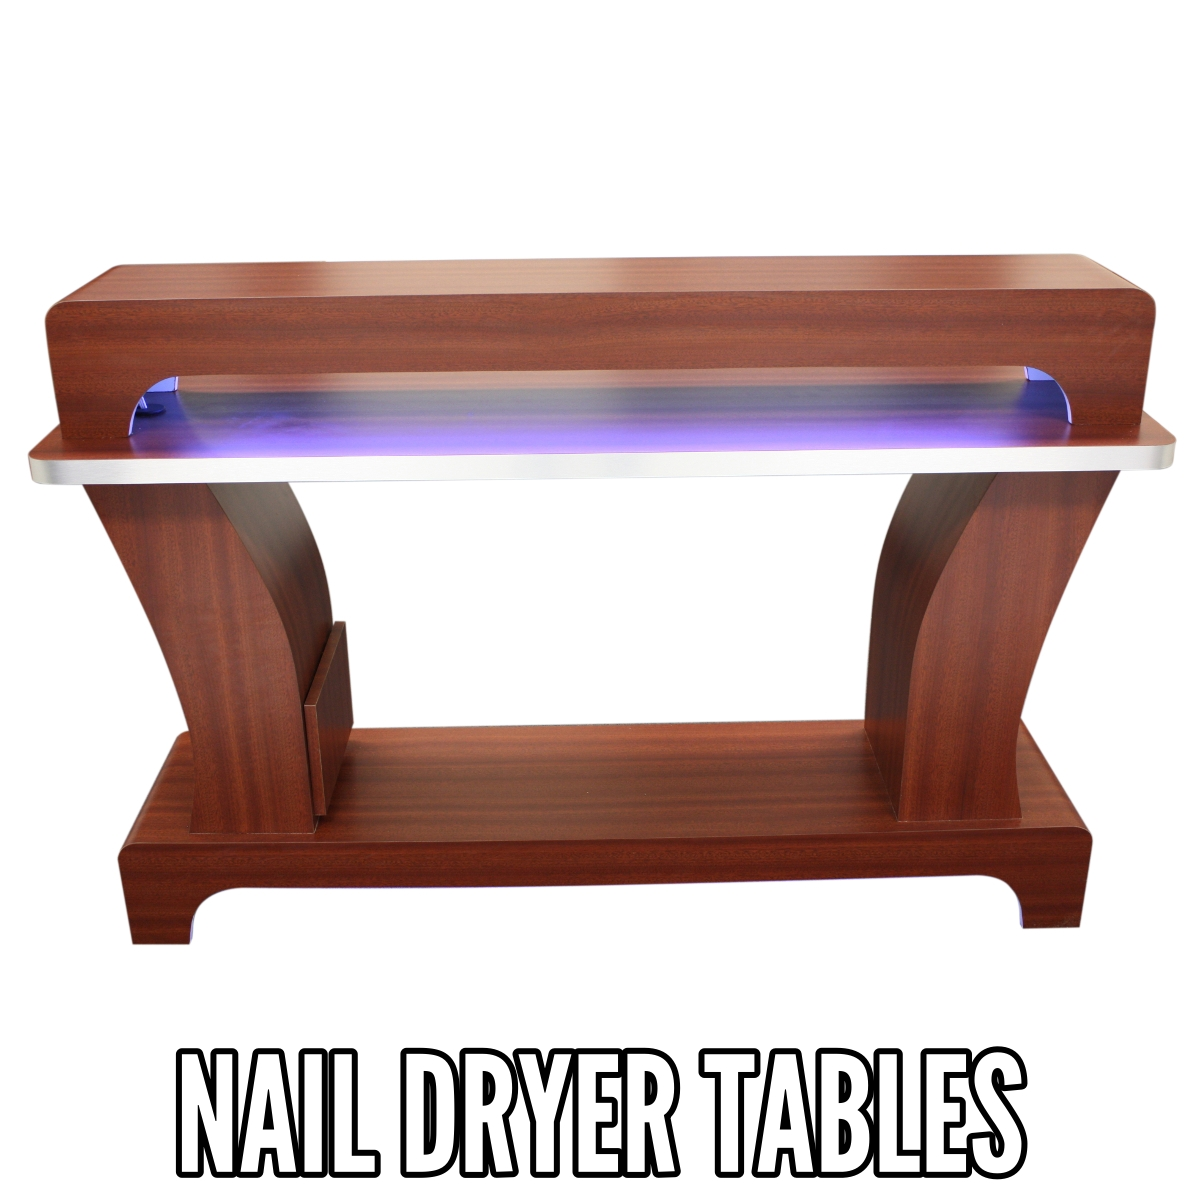 Nail Dryer Tables | Professional Nail Salon Furniture | CCI Beauty